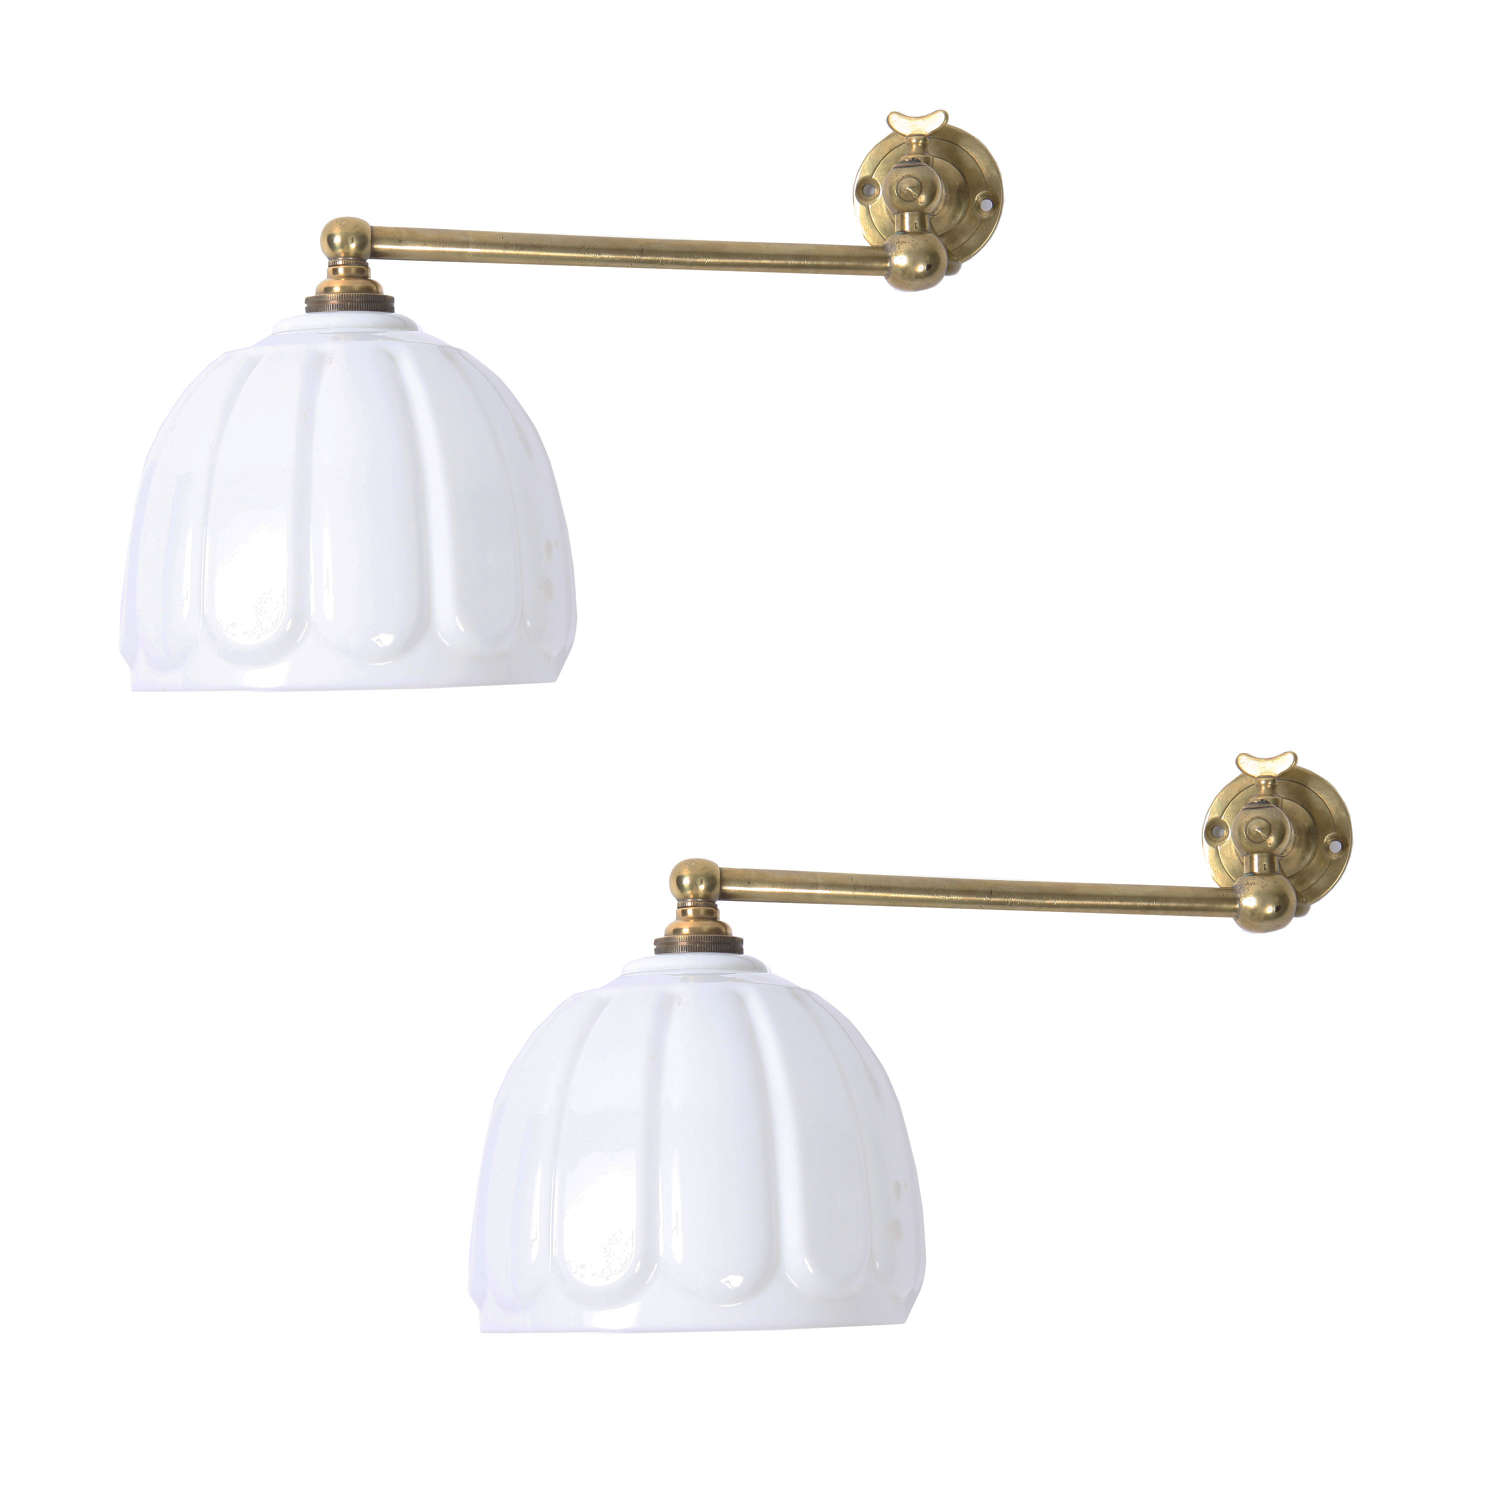 Pair of Brass Wall Lights with Opaline Shades